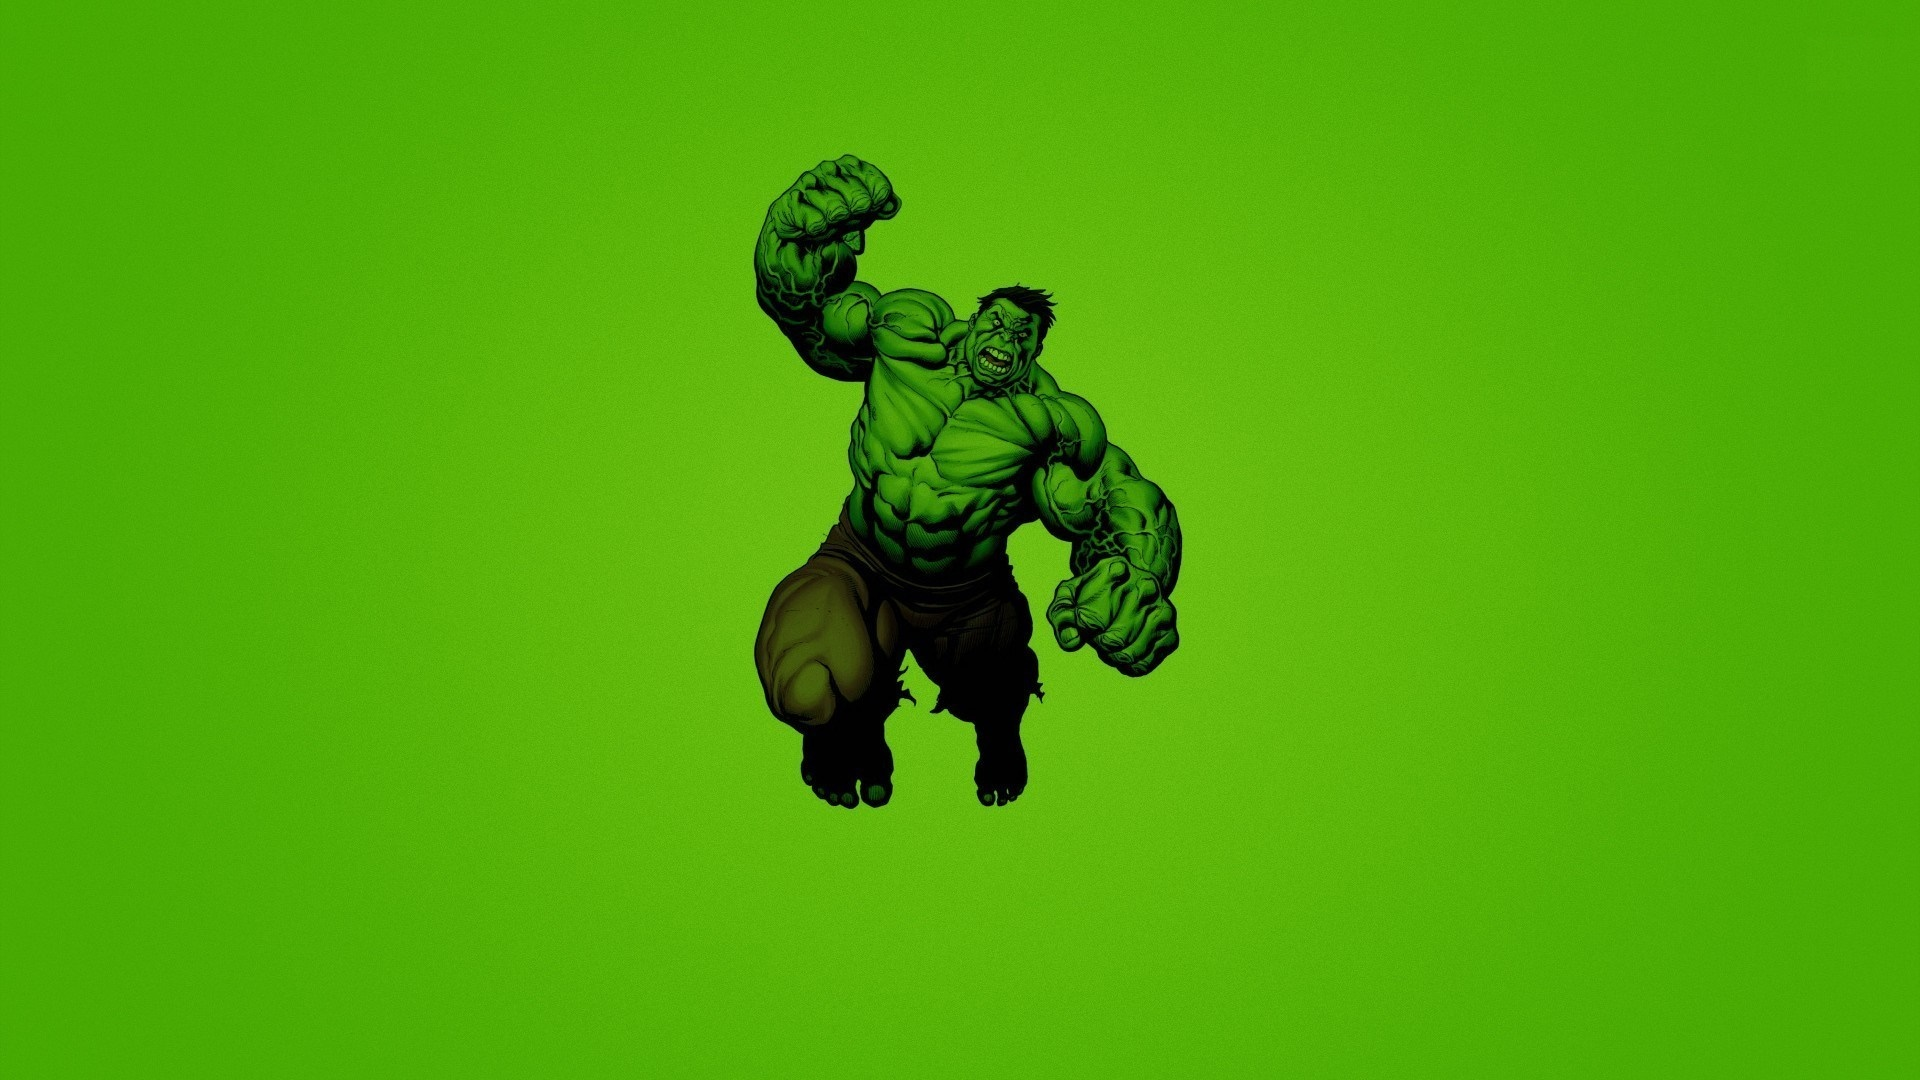 Incredible hulk wallpapers hd backgrounds download - Hulk hd images free download ...